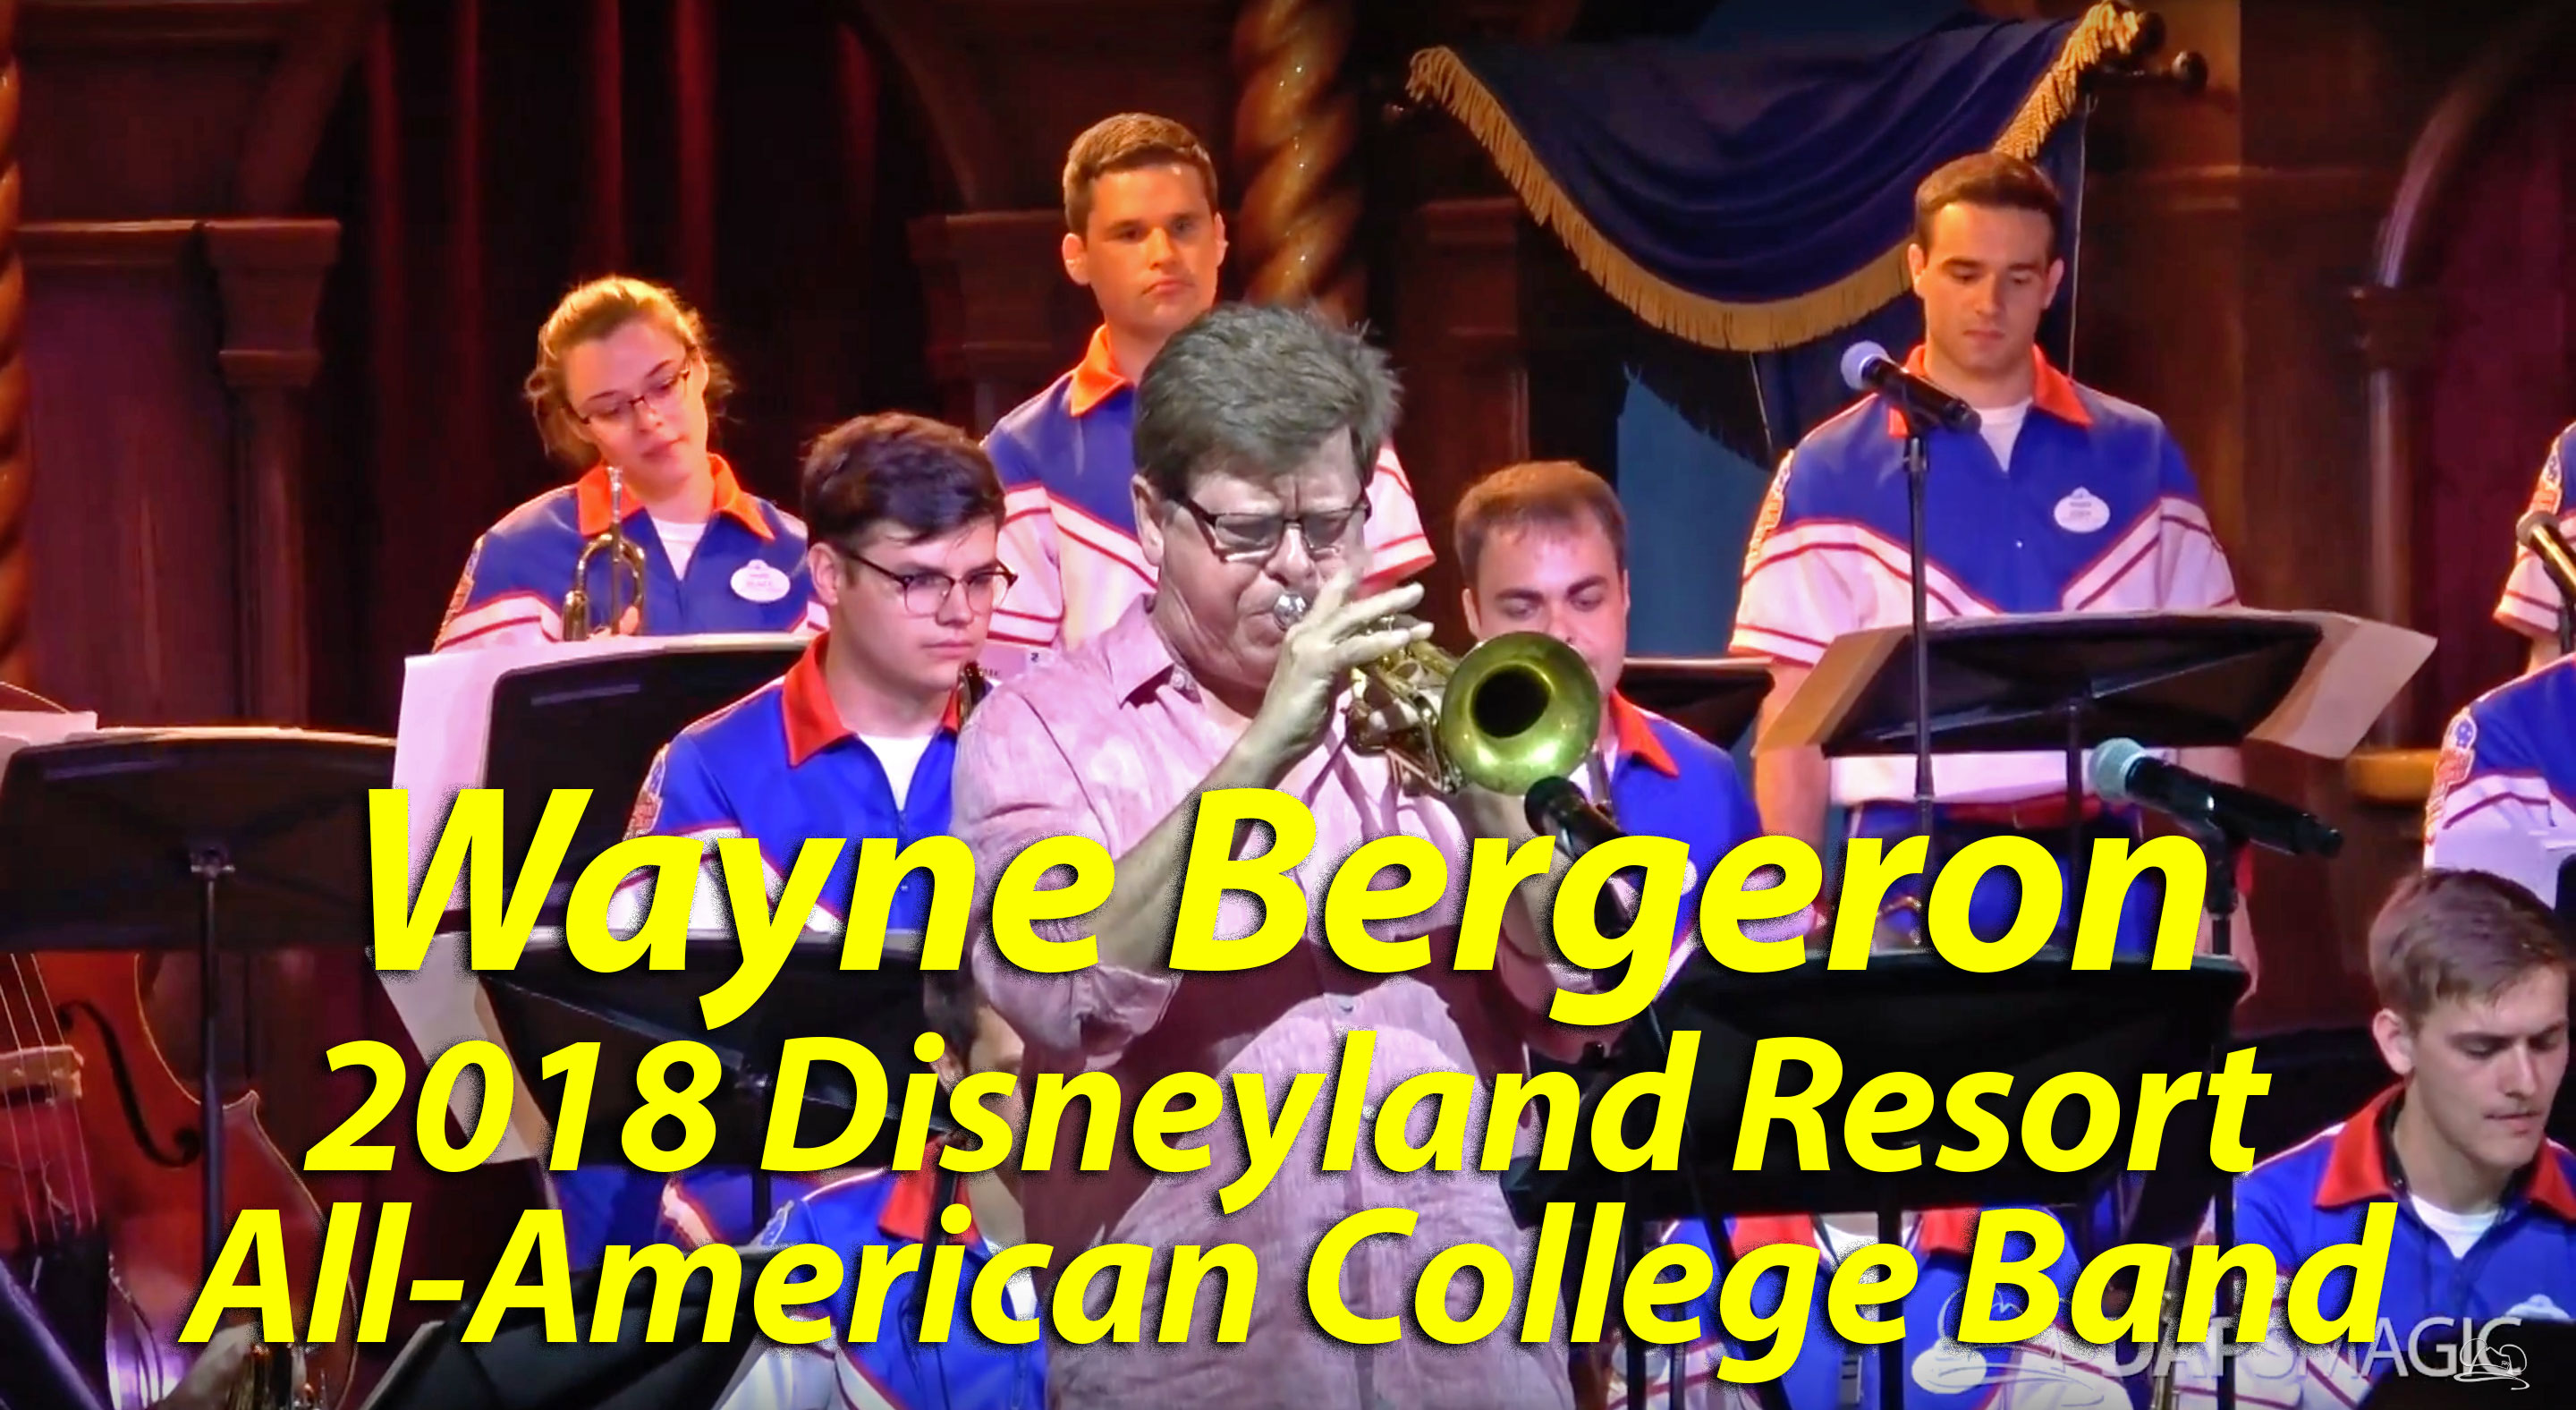 Wayne Bergeron Takes 2018 Disneyland Resort All-American College Band to New Heights During Royale Theatre Performance